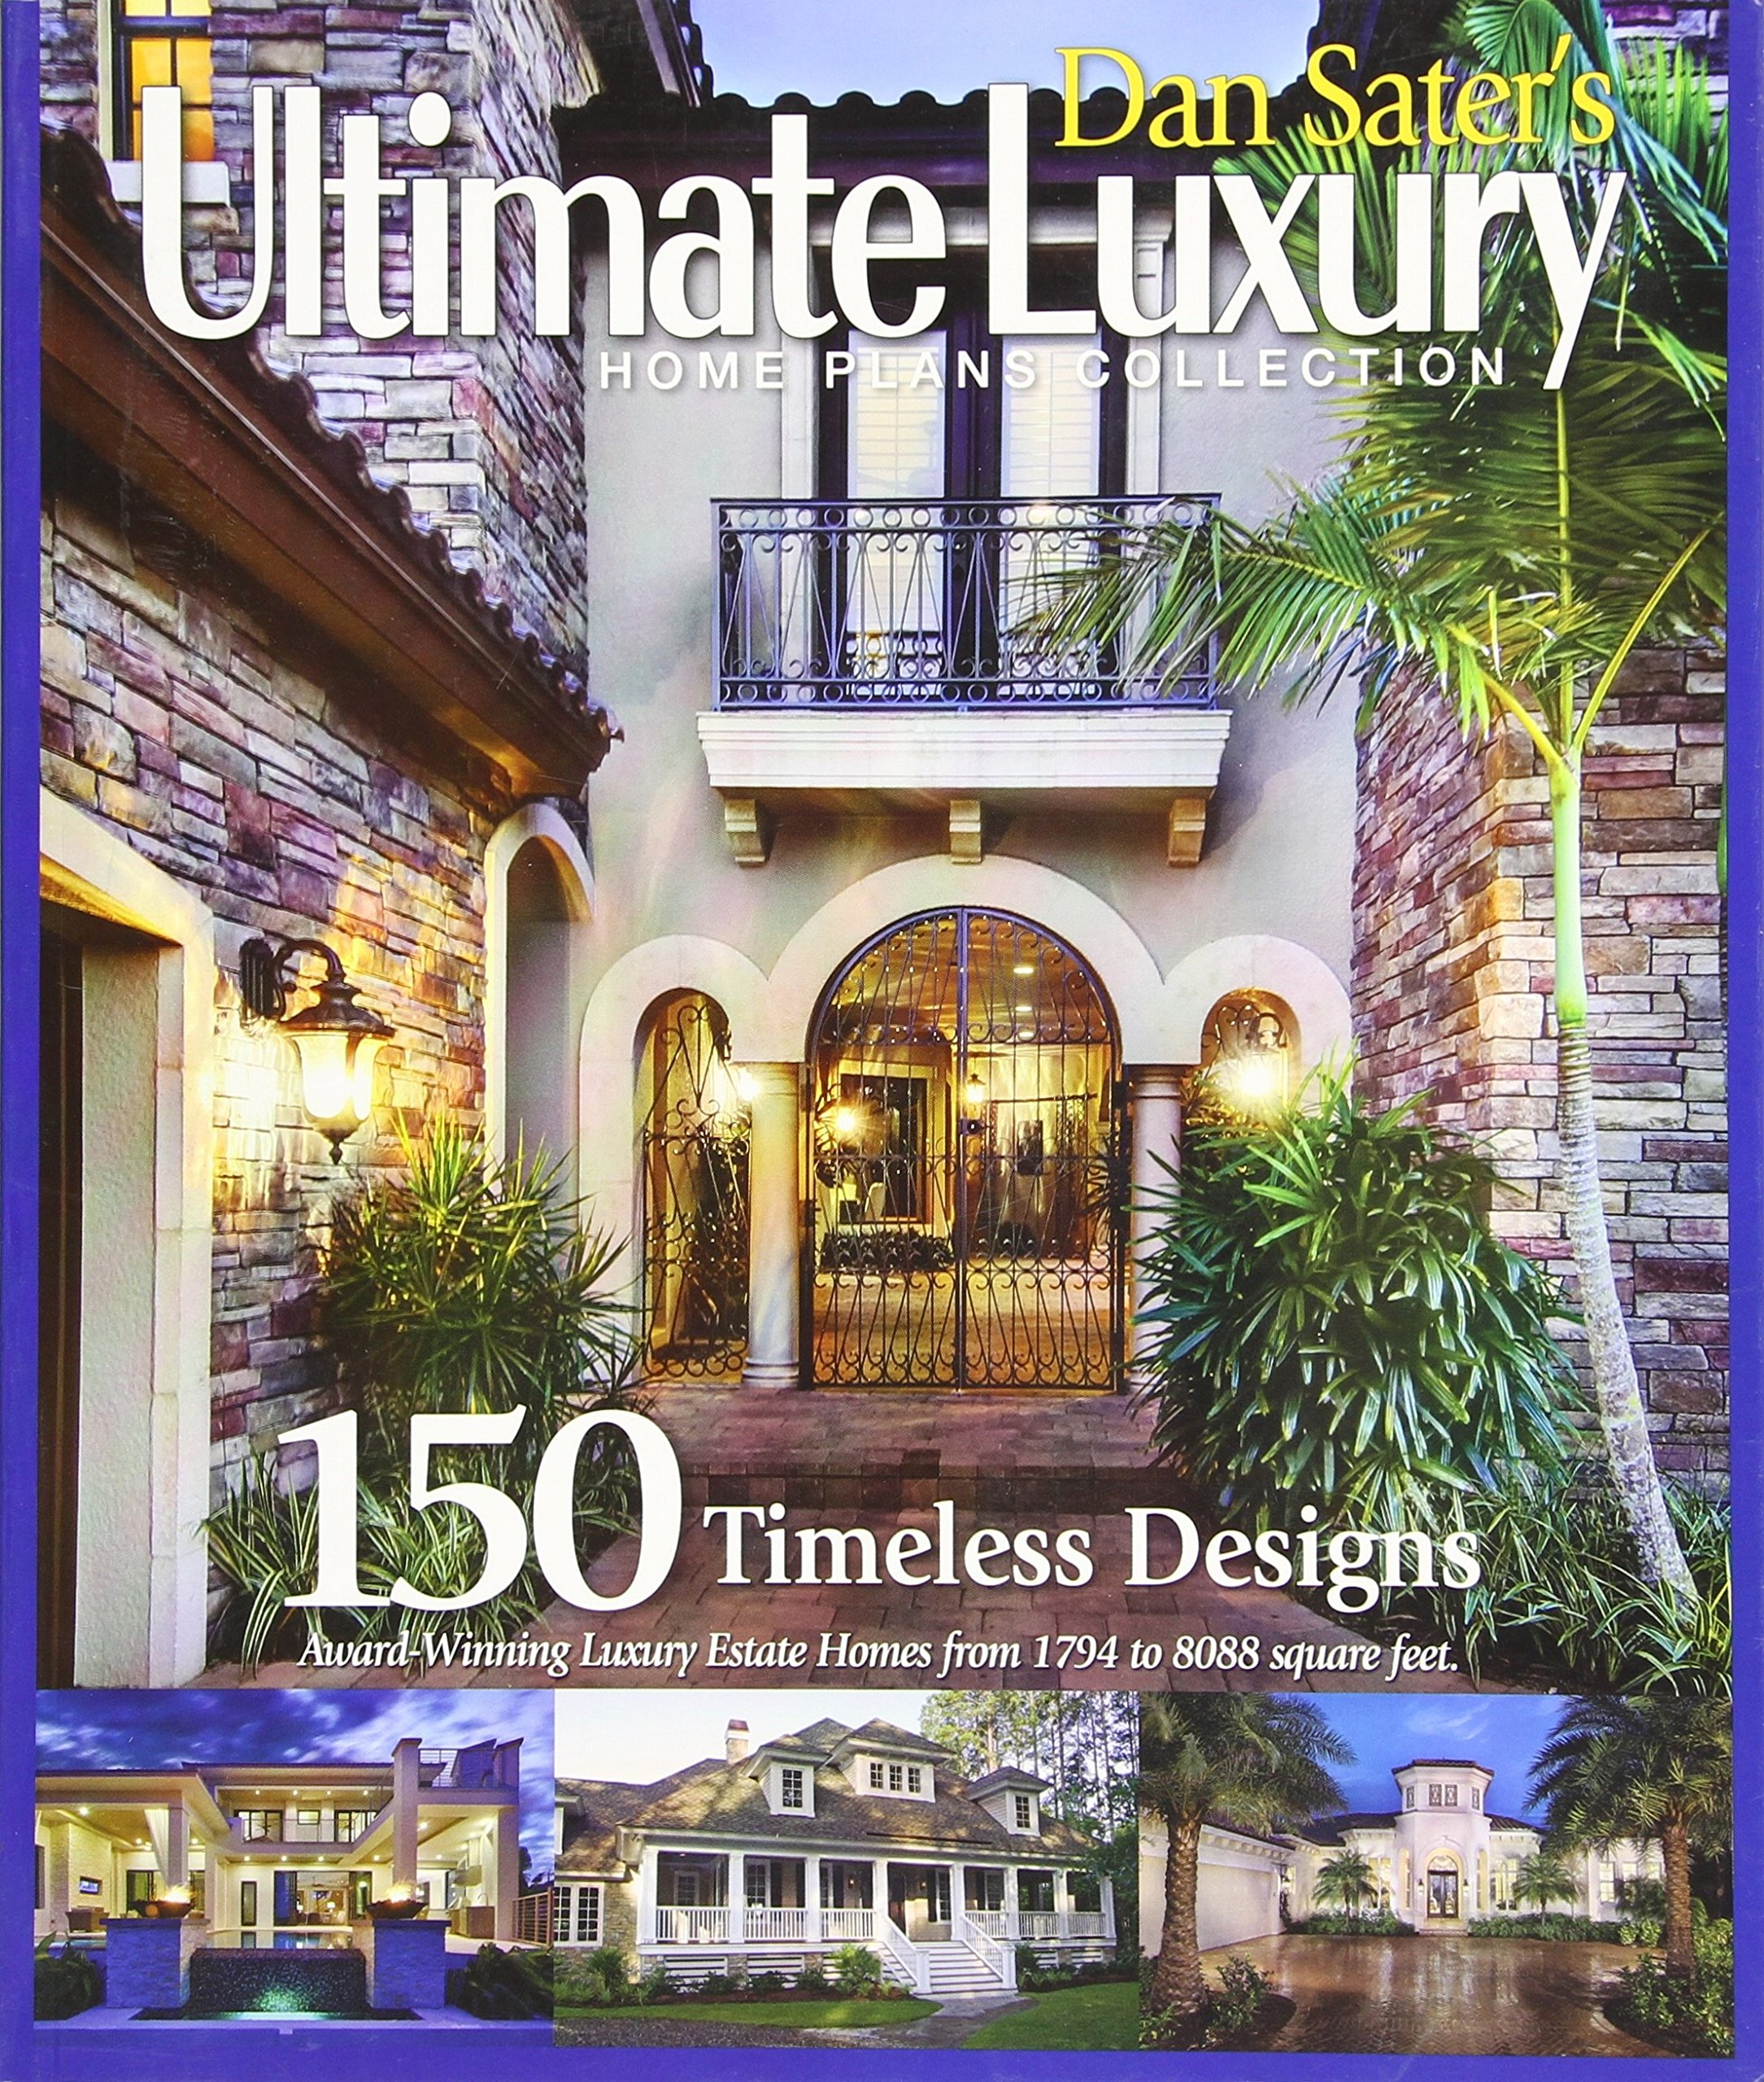 Download Dan Sater's Ultimate Luxury Home Plans Collection-150 Timeless Designs of View Oriented Estate Homes pdf